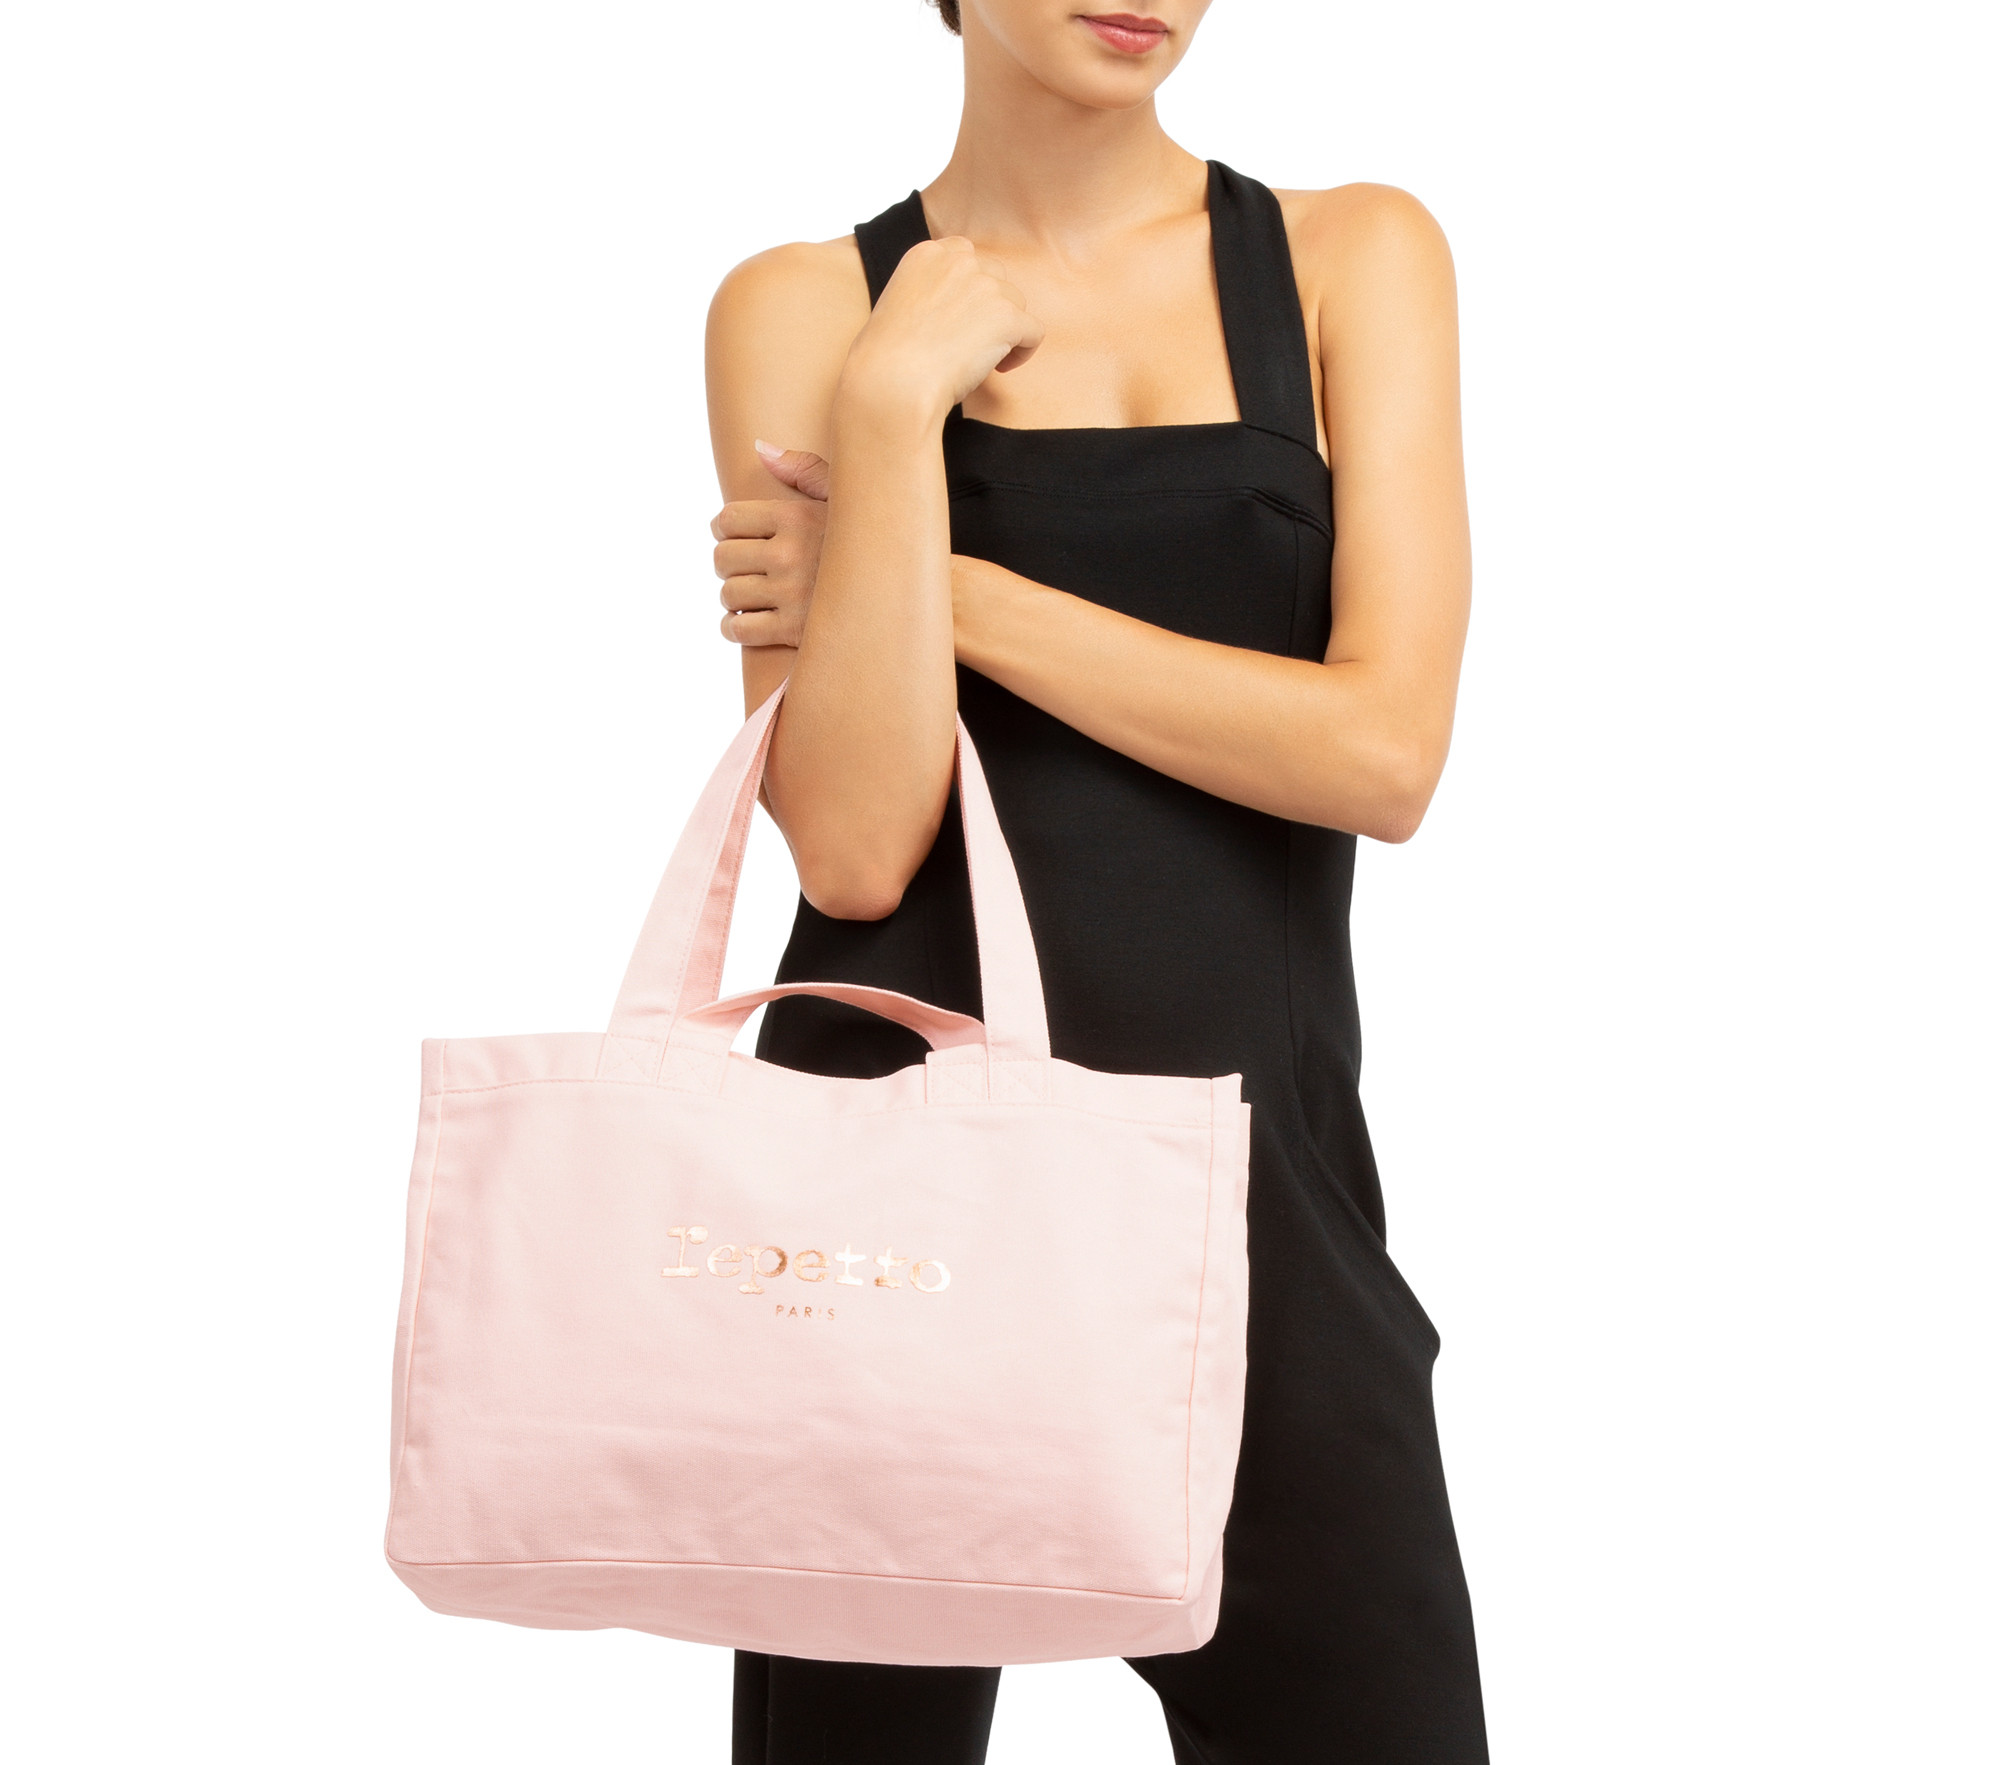 Ballerine shopping bag